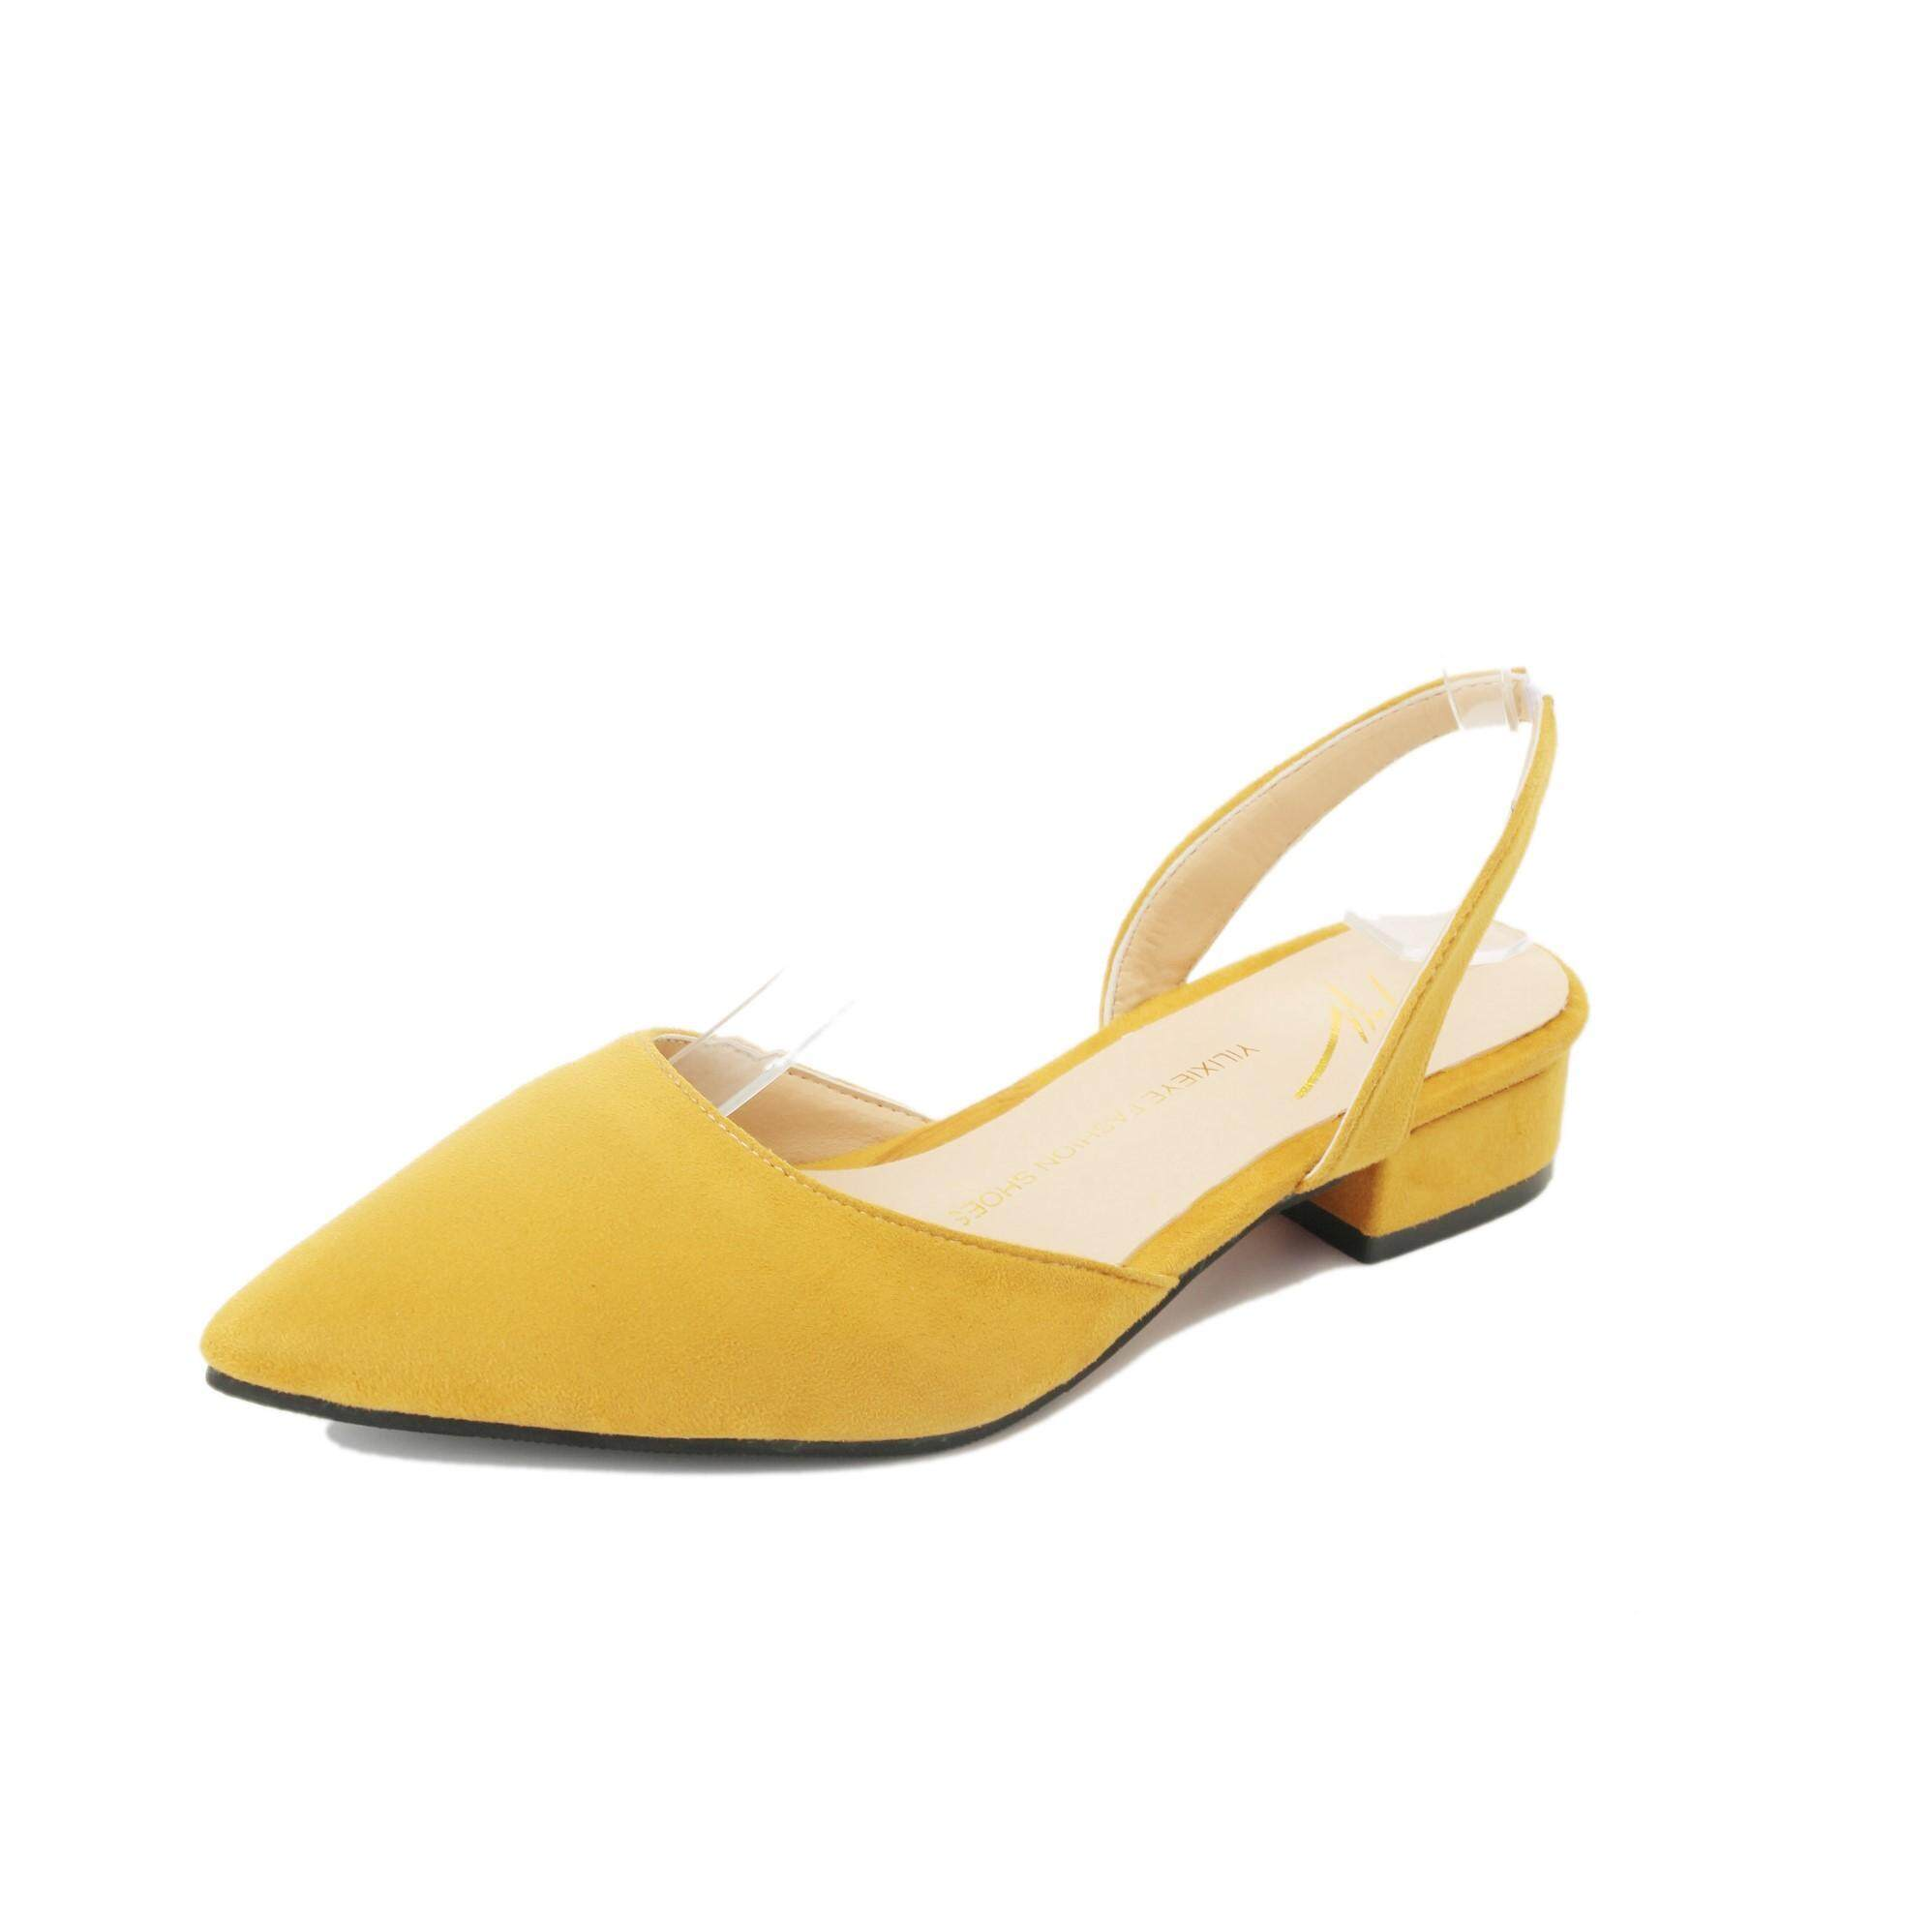 Ladies Shoes For The Best Price In Malaysia Baby Heels Sepatu Anak Red Rose Plain Heeled Sandals